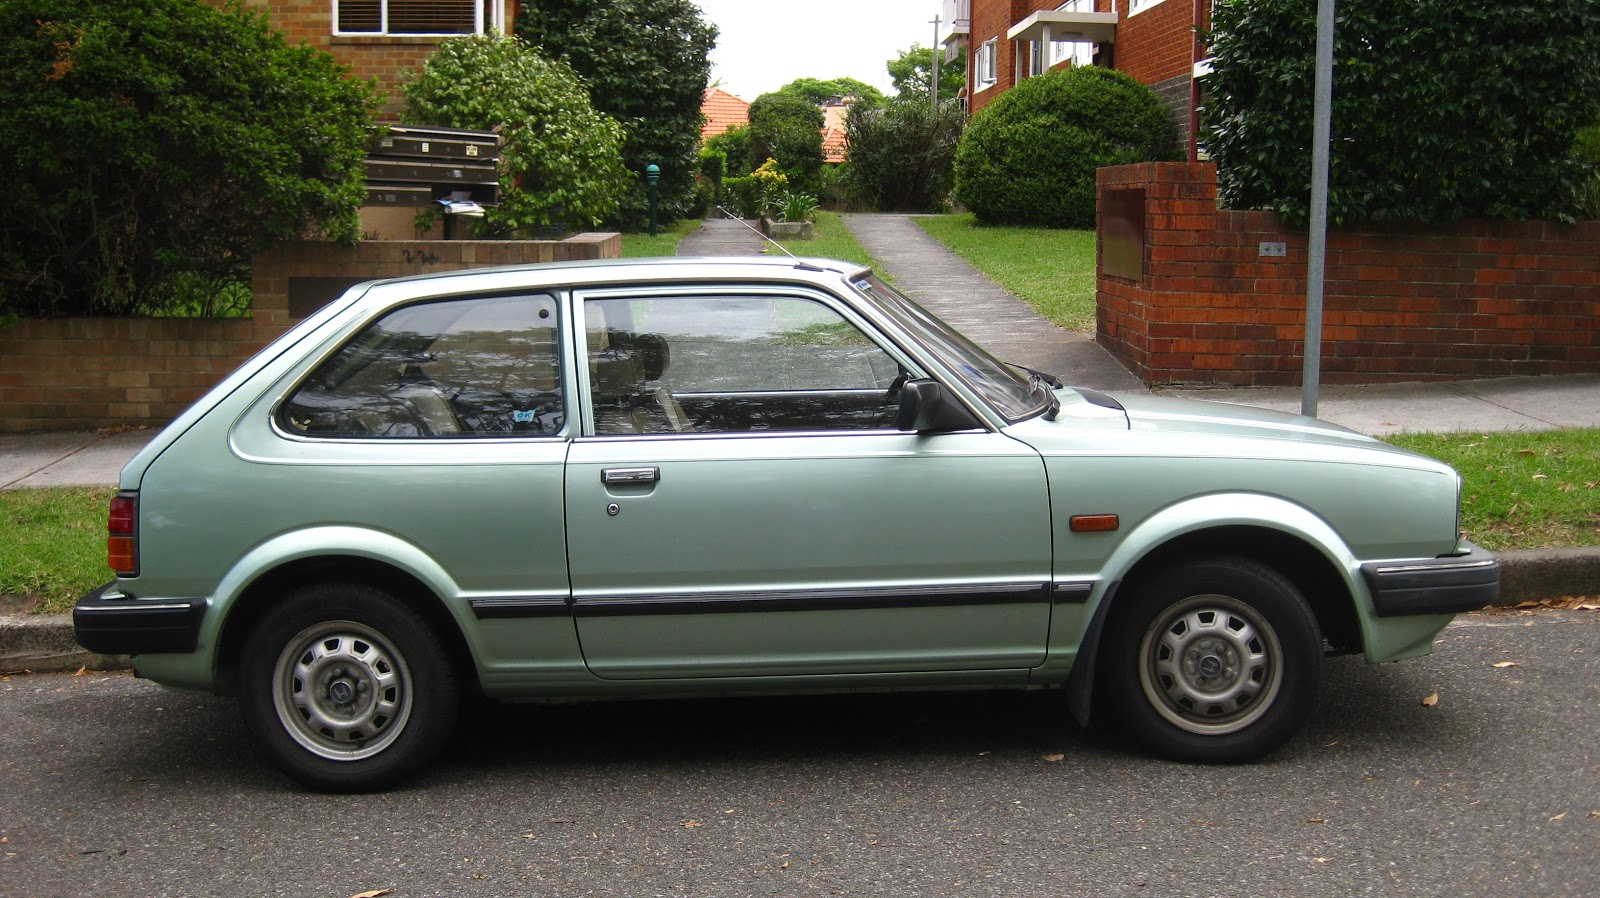 aussie old parked cars 1982 honda civic 3 door. Black Bedroom Furniture Sets. Home Design Ideas